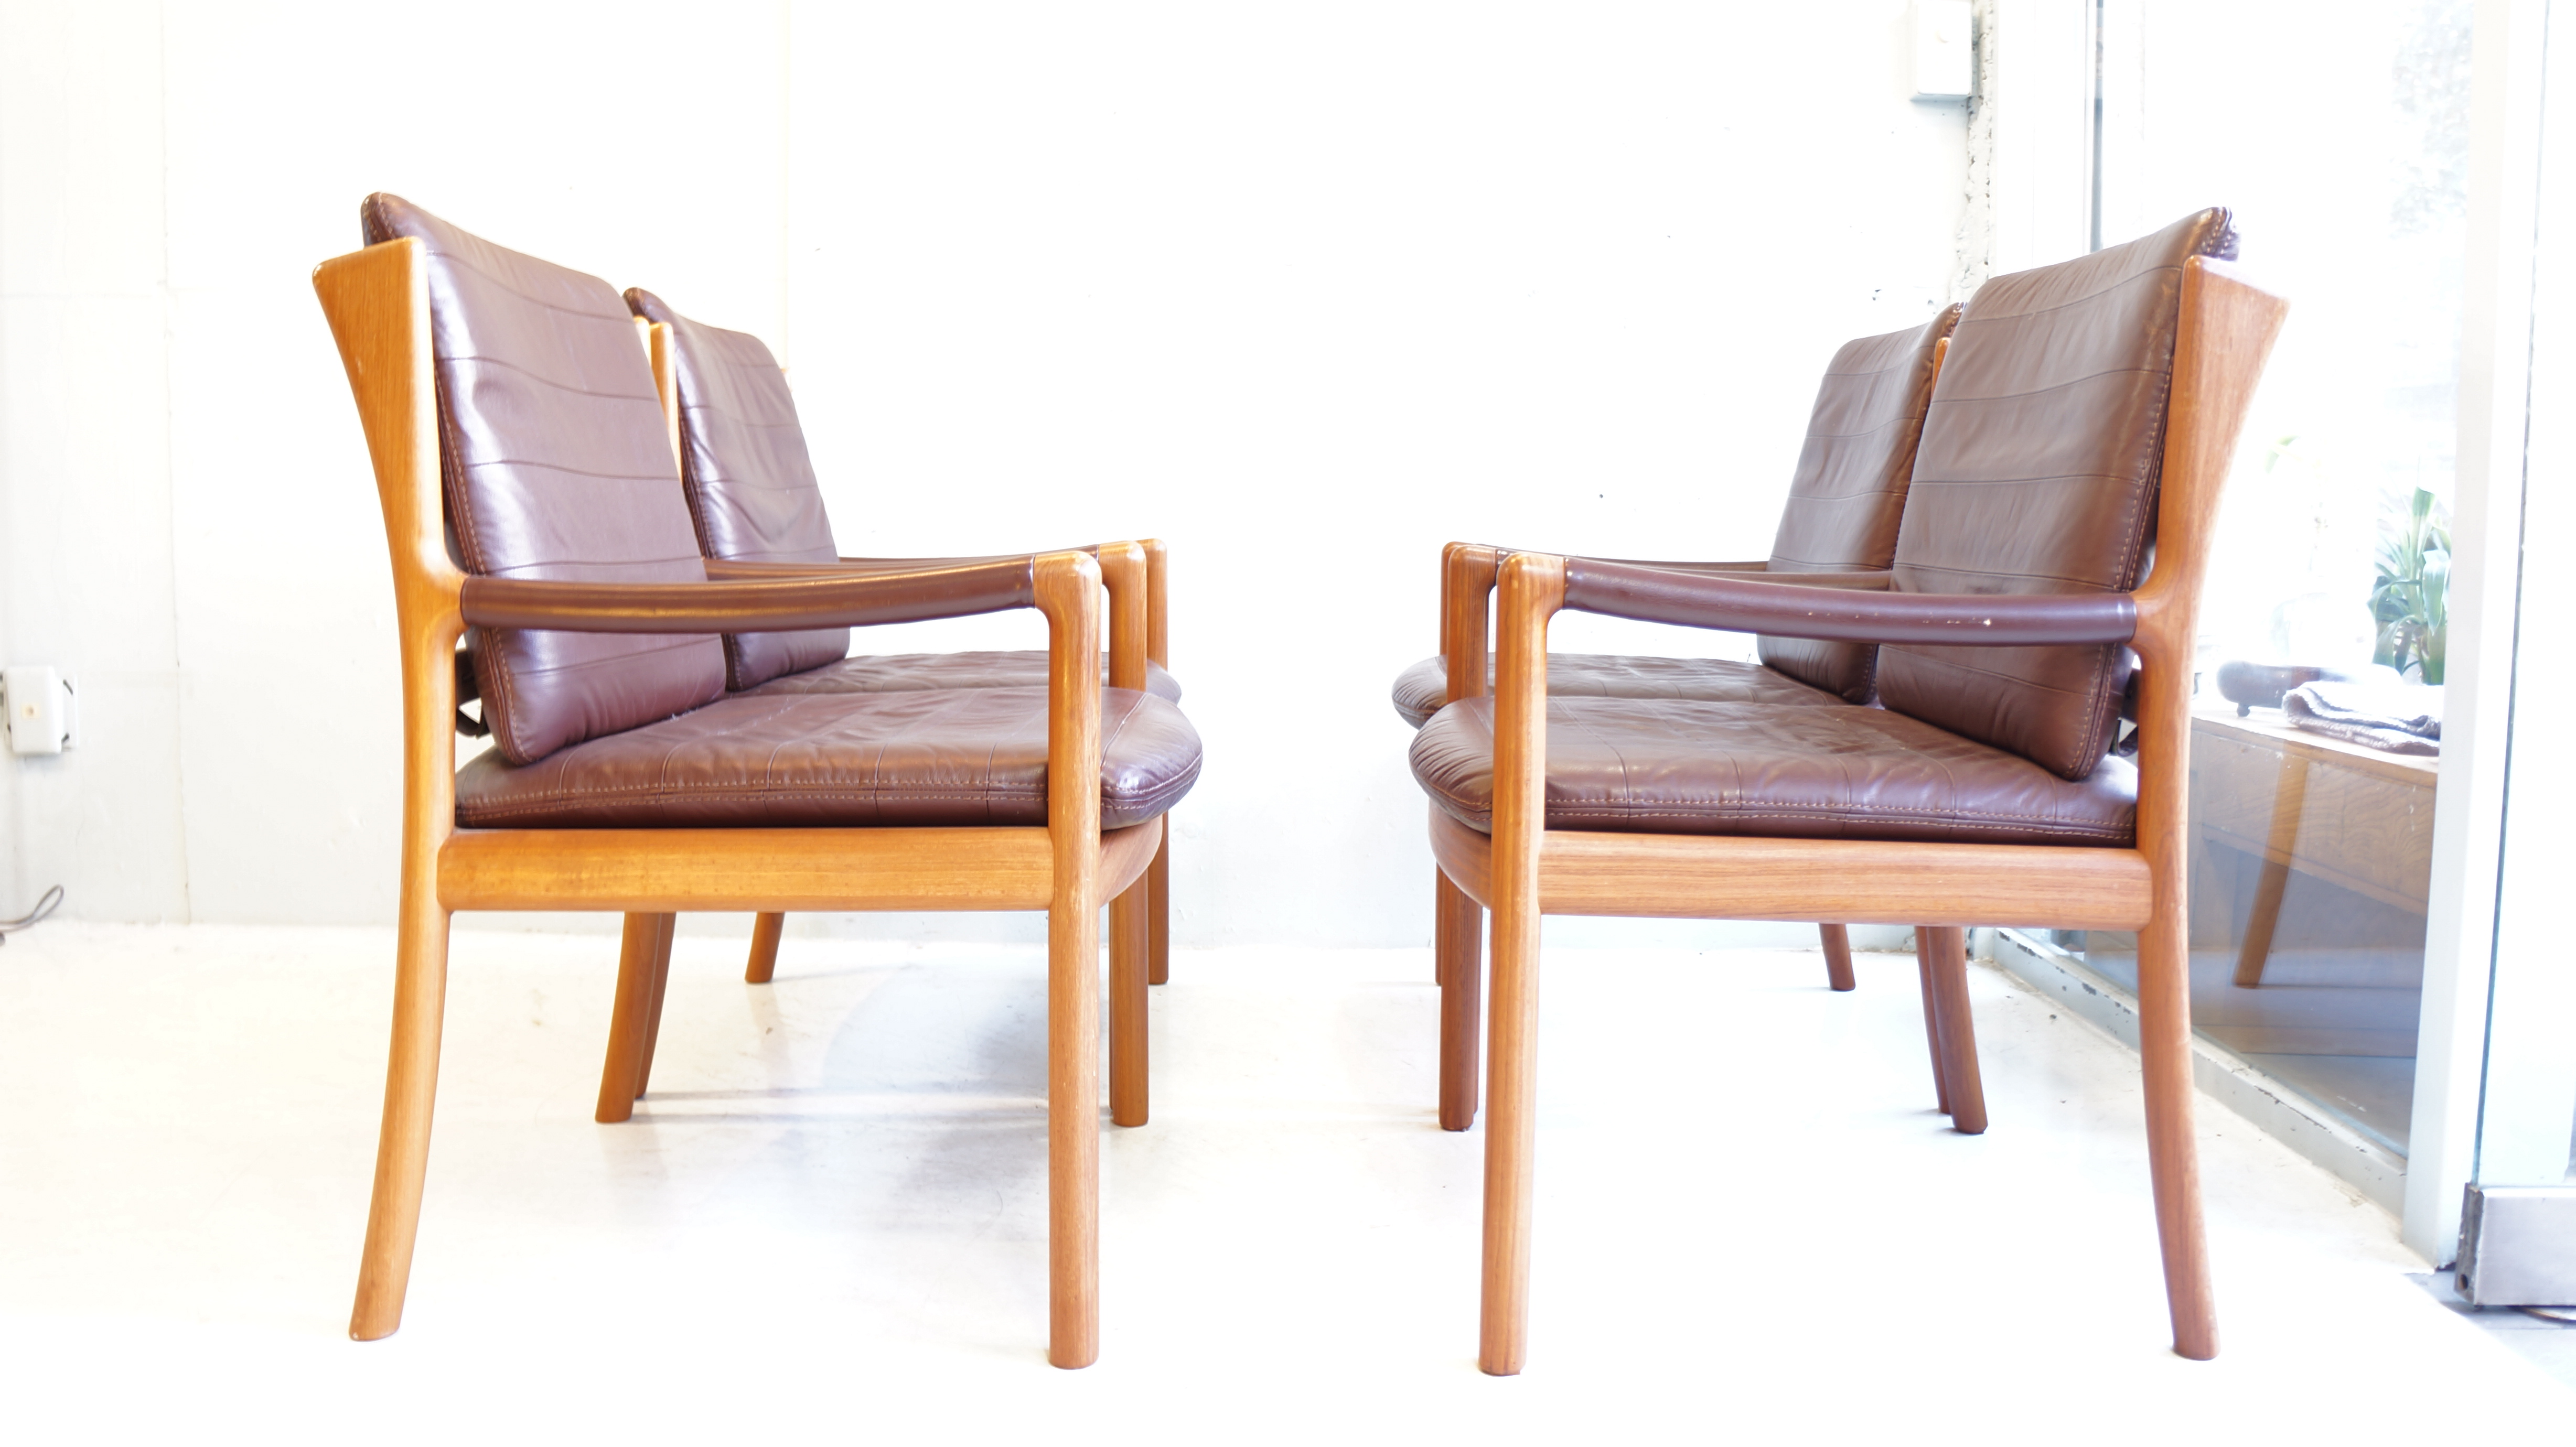 HITA KOUGEI DINING ARM CHAIR / 日田工芸 ダイニング アーム チェア